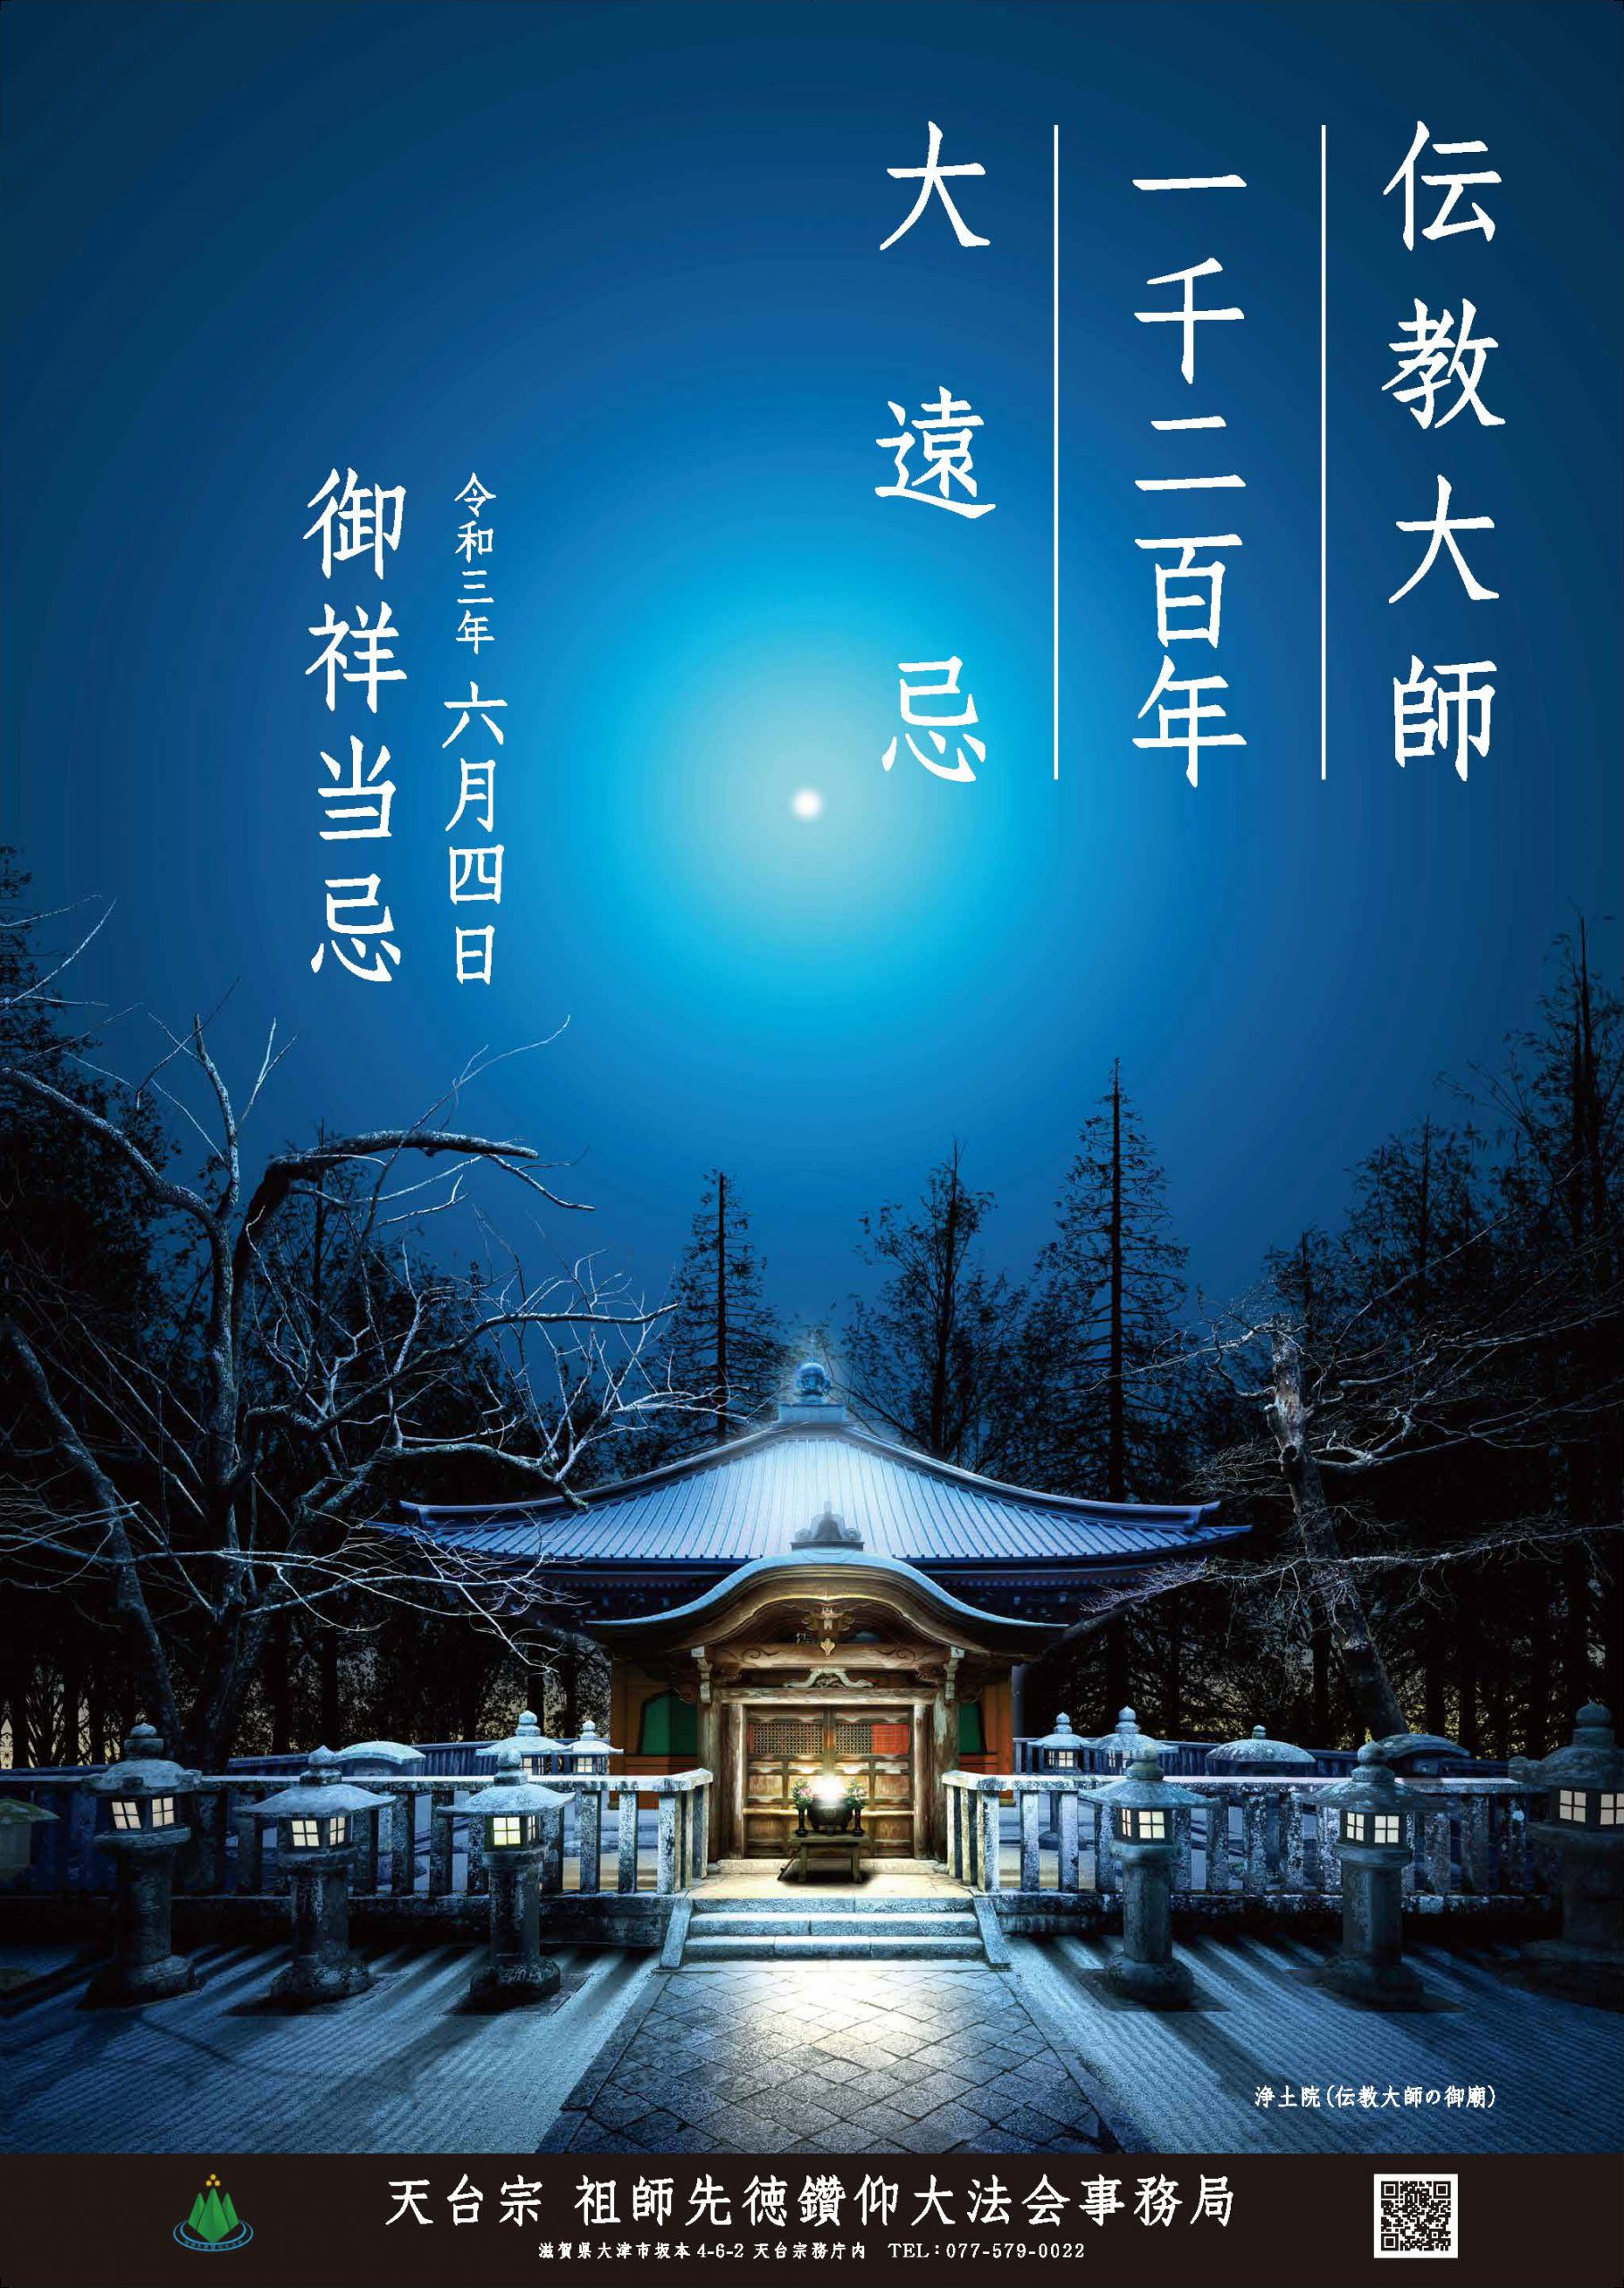 B2_poster_0507ol-1-scaled